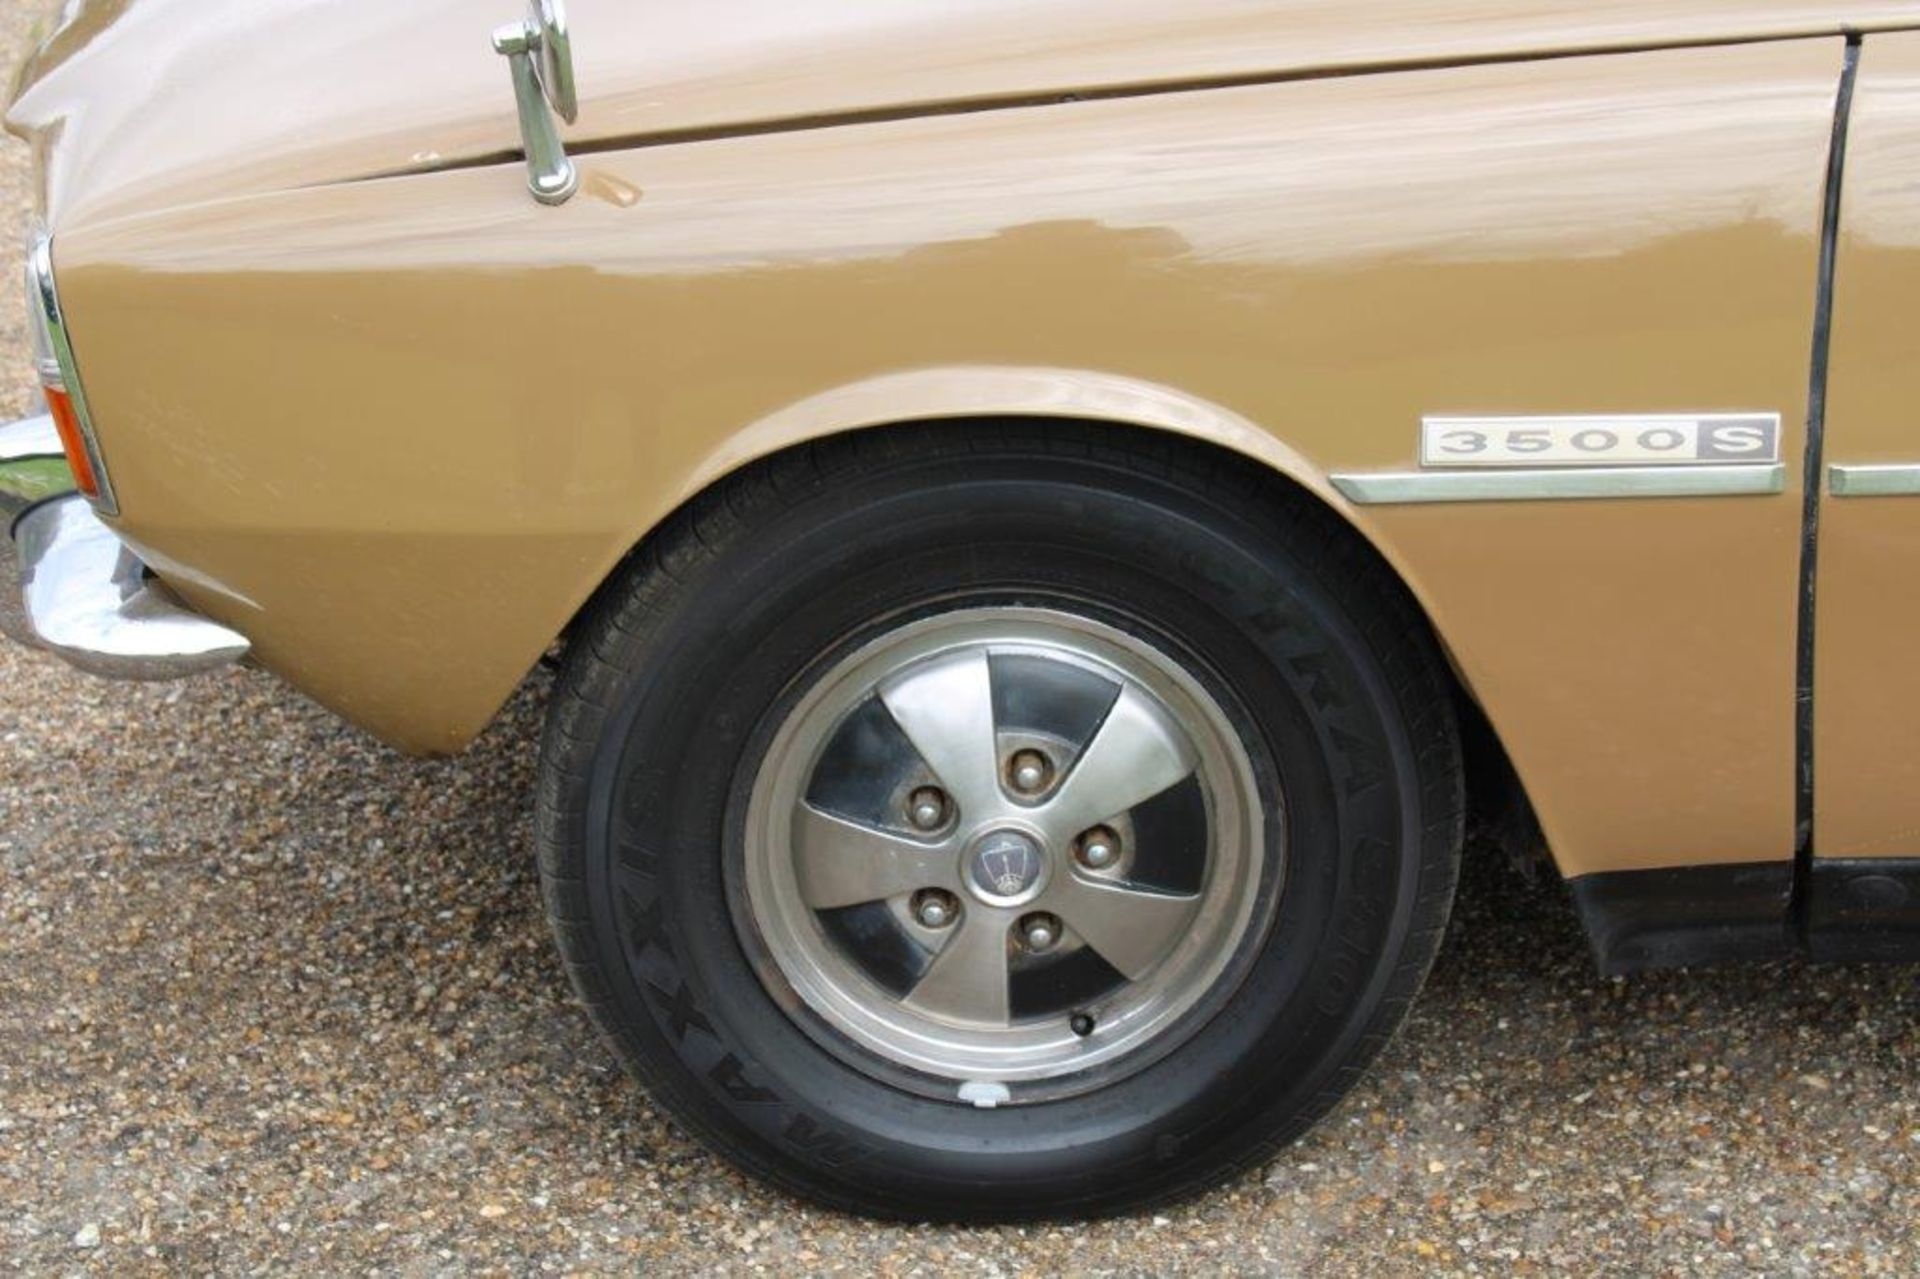 1970 Rover P6 3500 S 1 of 6 development cars - Image 4 of 21